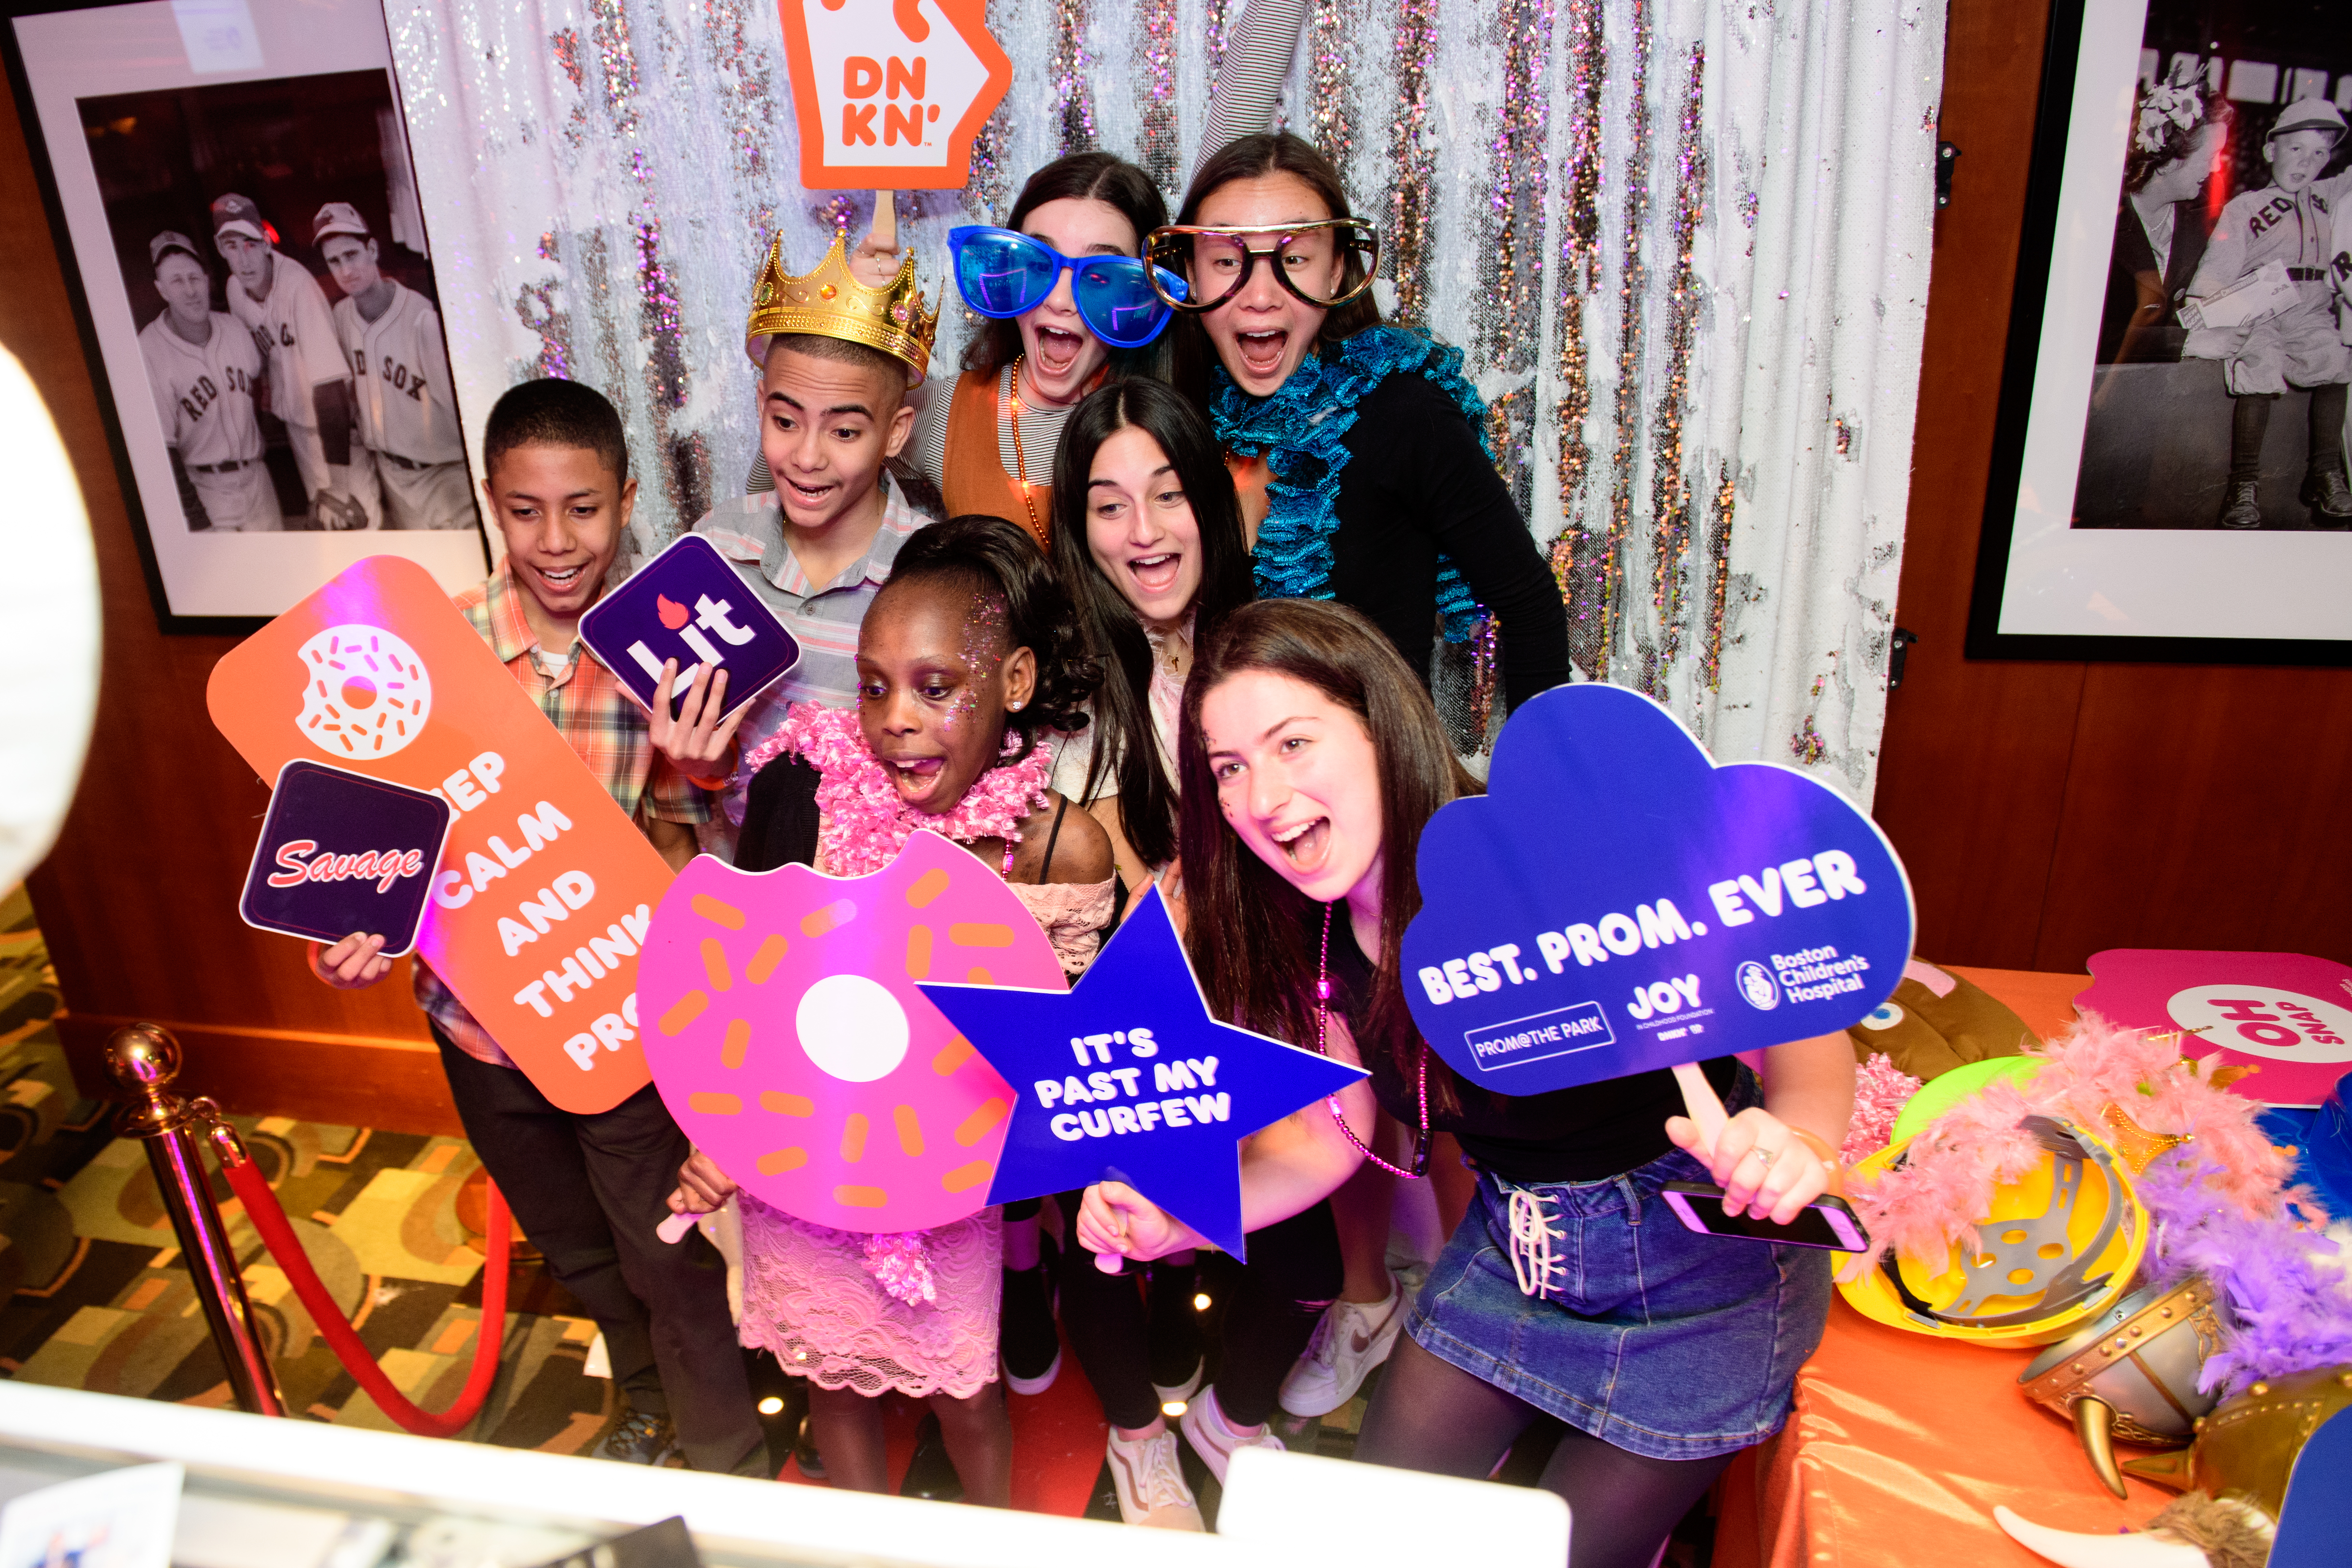 BCH patients gather in a photo booth to create a prom memory.